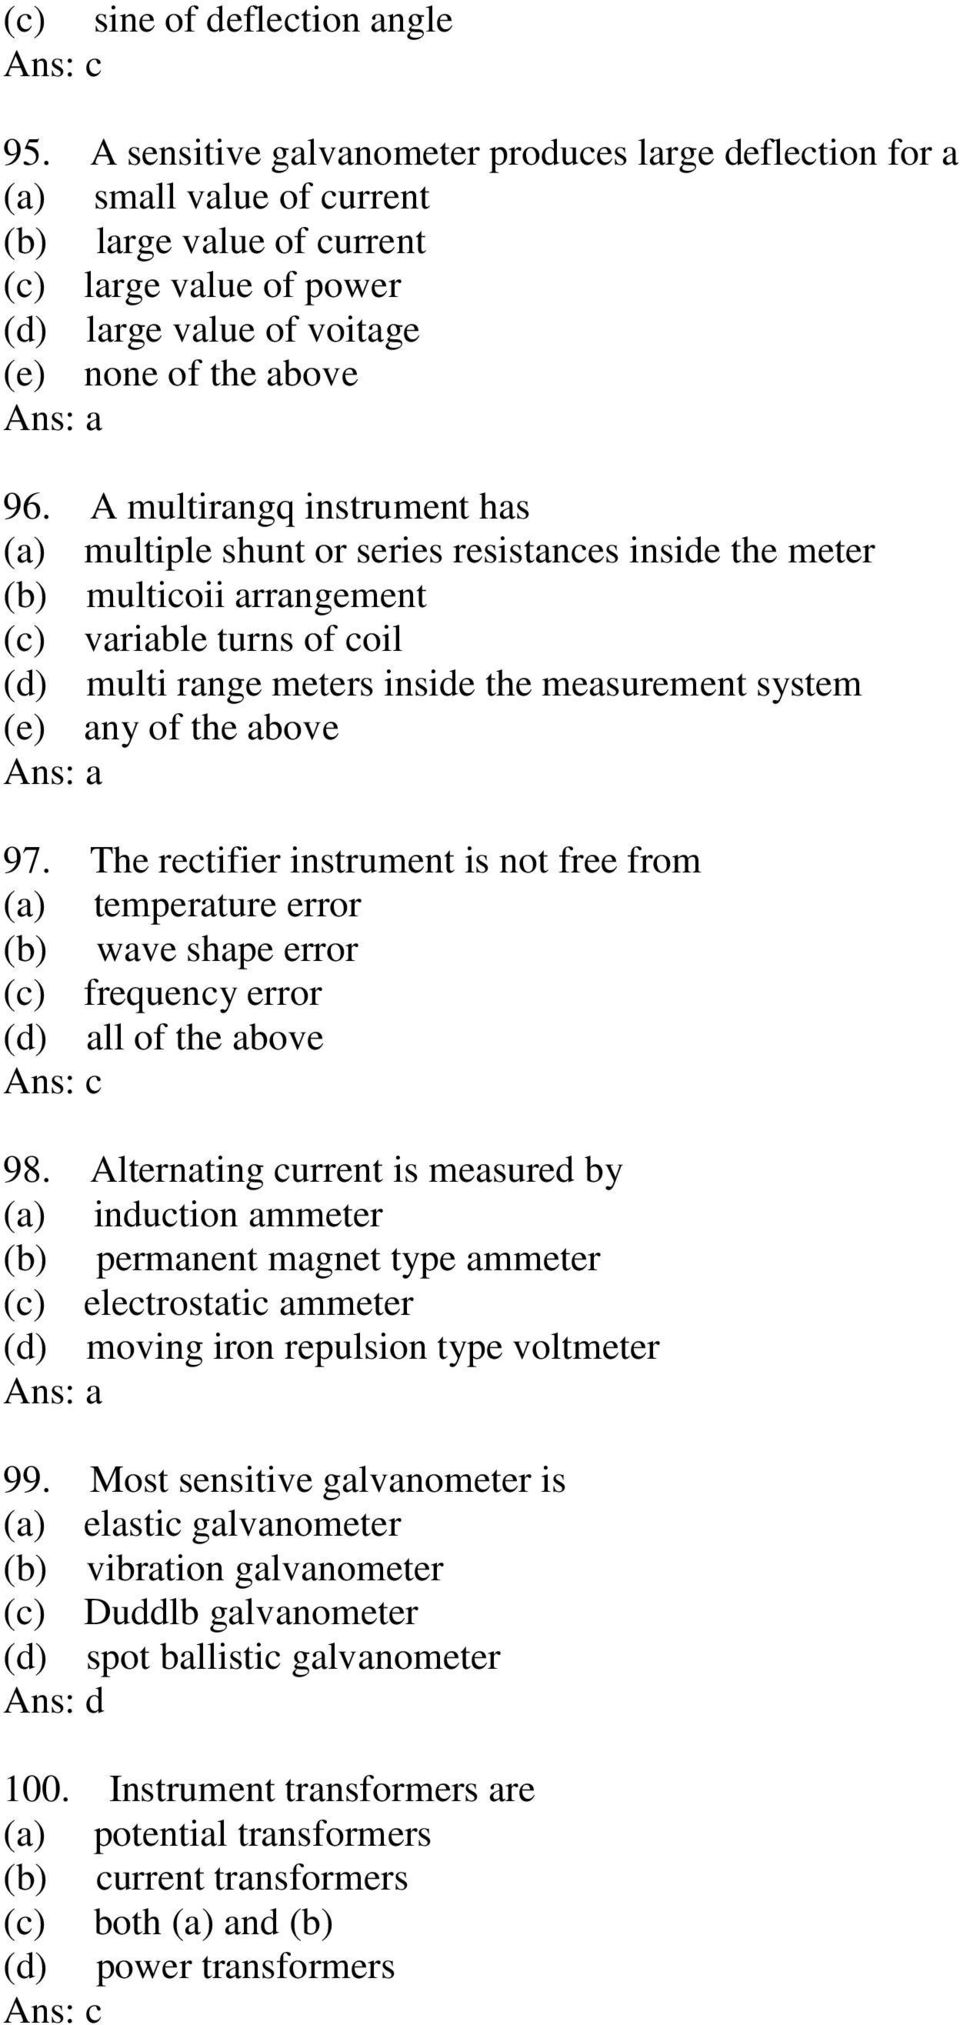 Government College Of Engineering Bargur Measurements And Electrodynamometer Power Factor Meter Electronic Instrumentation A Multirangq Instrument Has Multiple Shunt Or Series Resistances Inside The